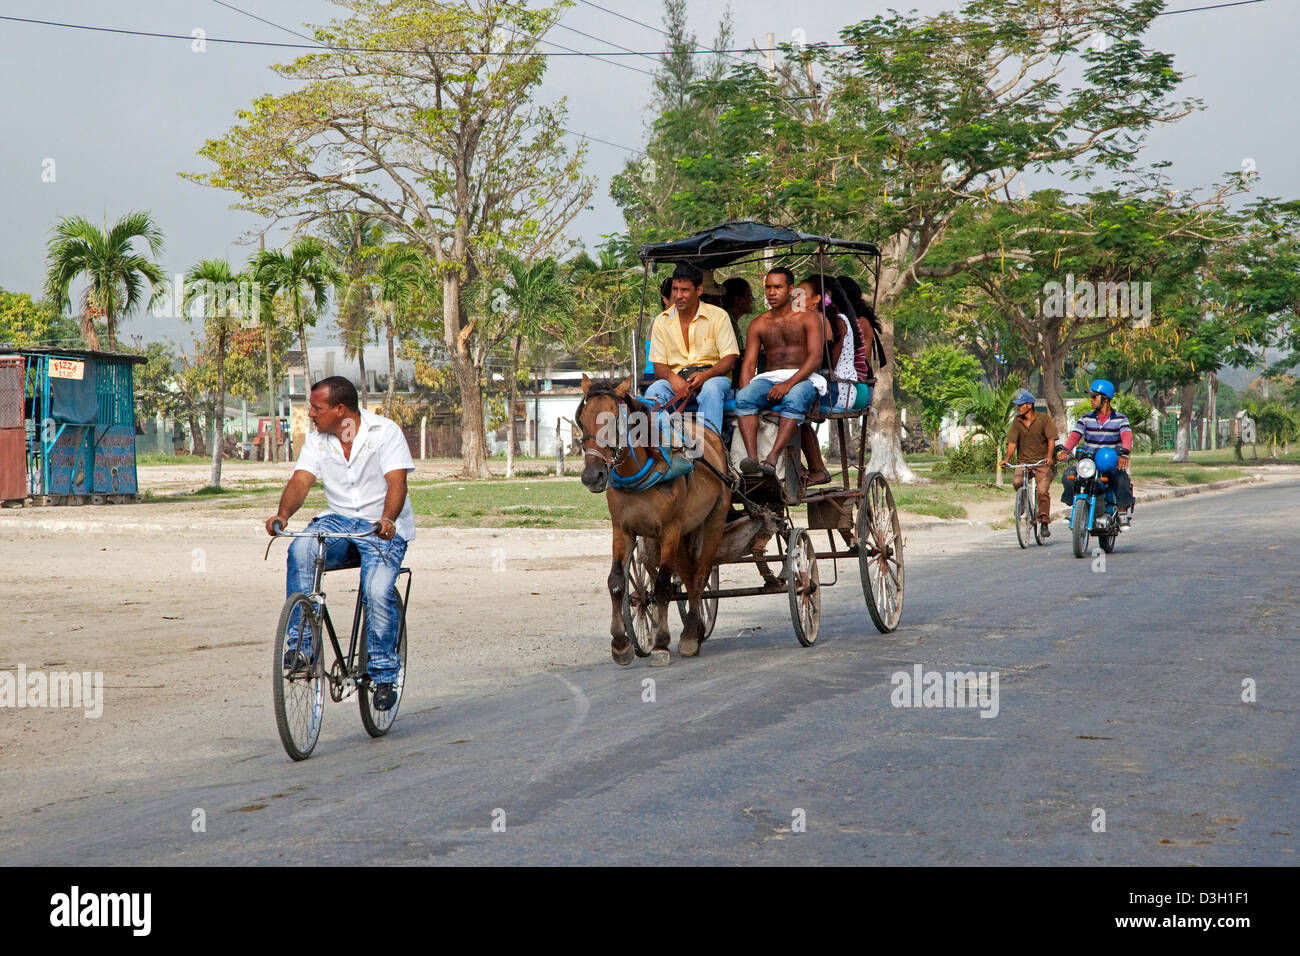 Public transport by horse and carriage in street, Granma, Cuba, Caribbean - Stock Image